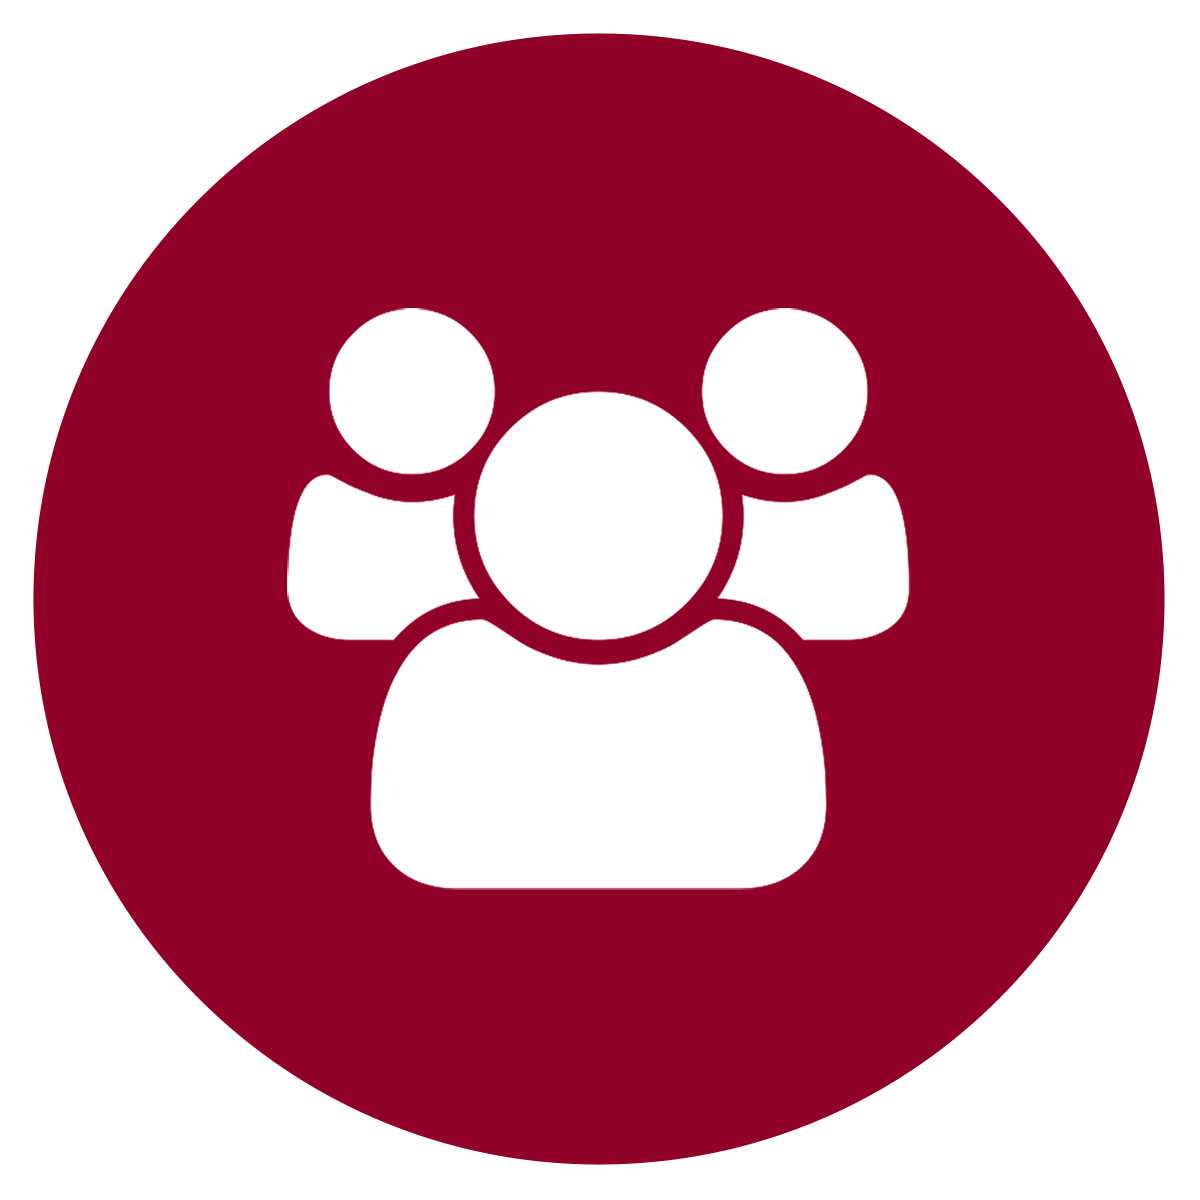 Operations Committee Icon